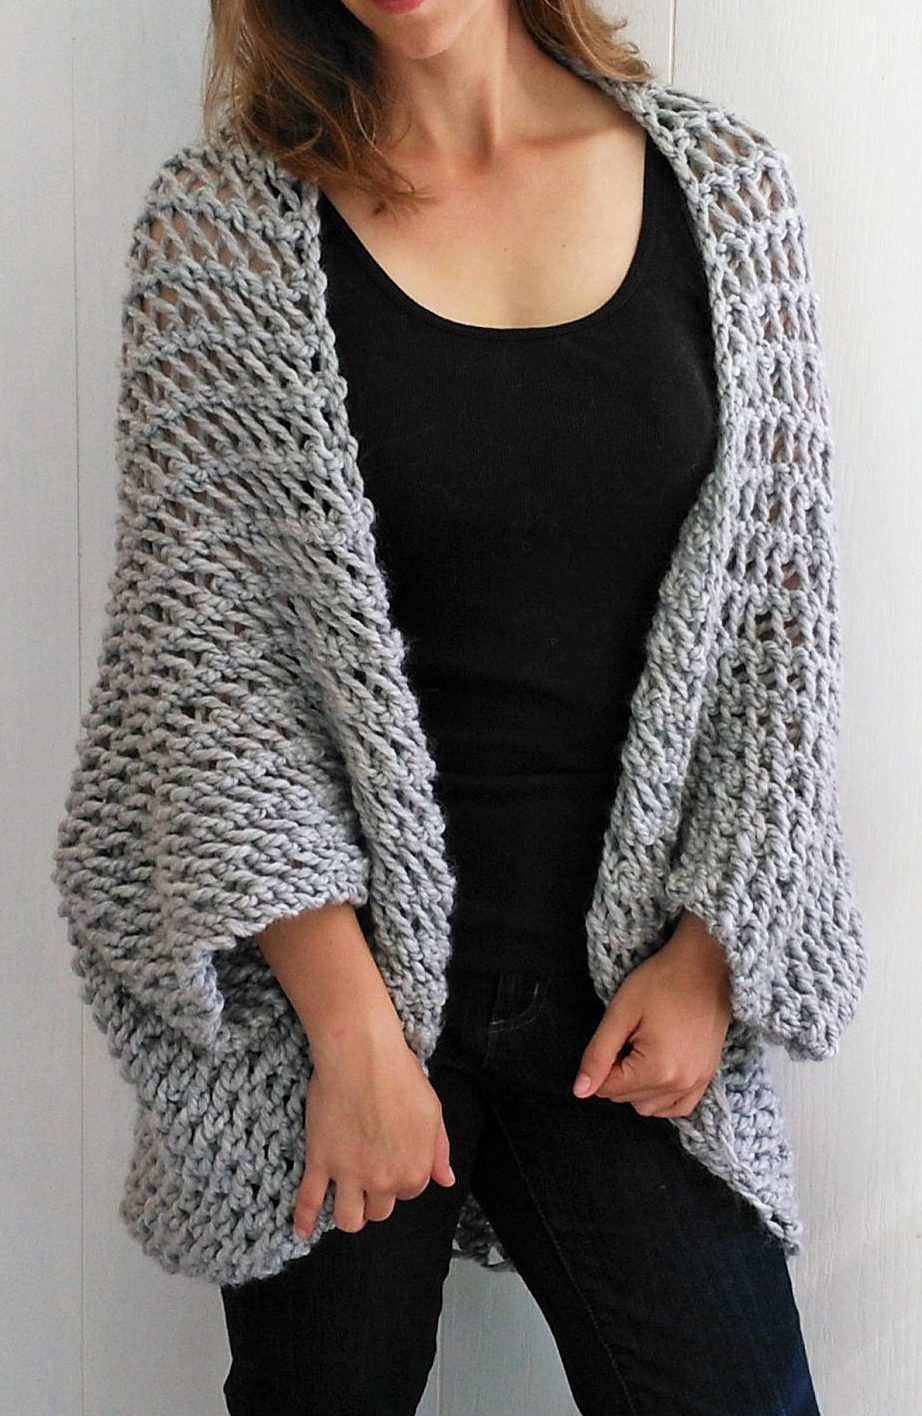 Knitted Jacket Patterns Easy Cardigan Knitting Patterns In The Loop Knitting